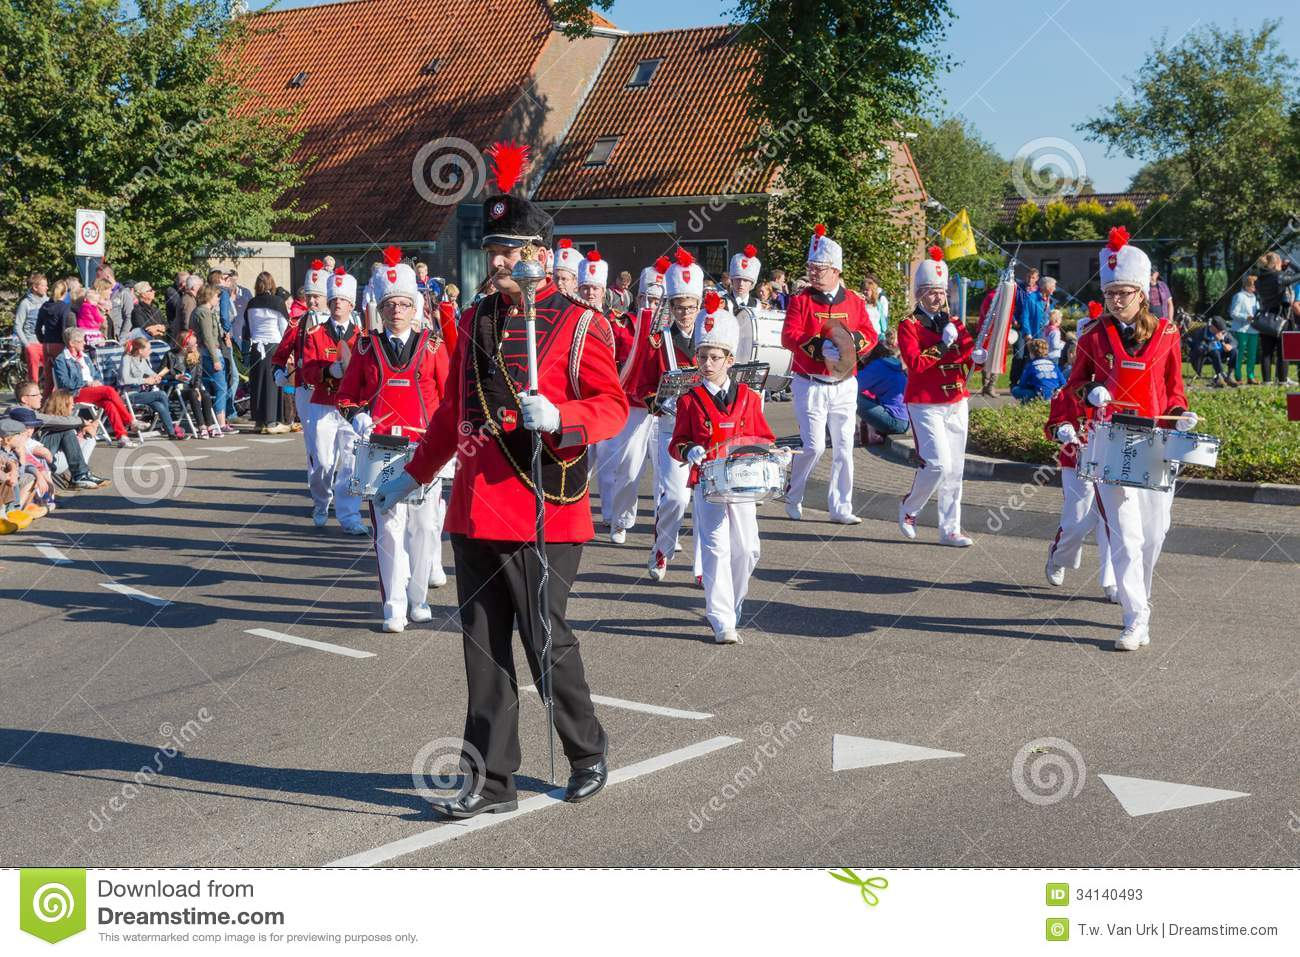 Marching band walking in a Dutch countryside parad